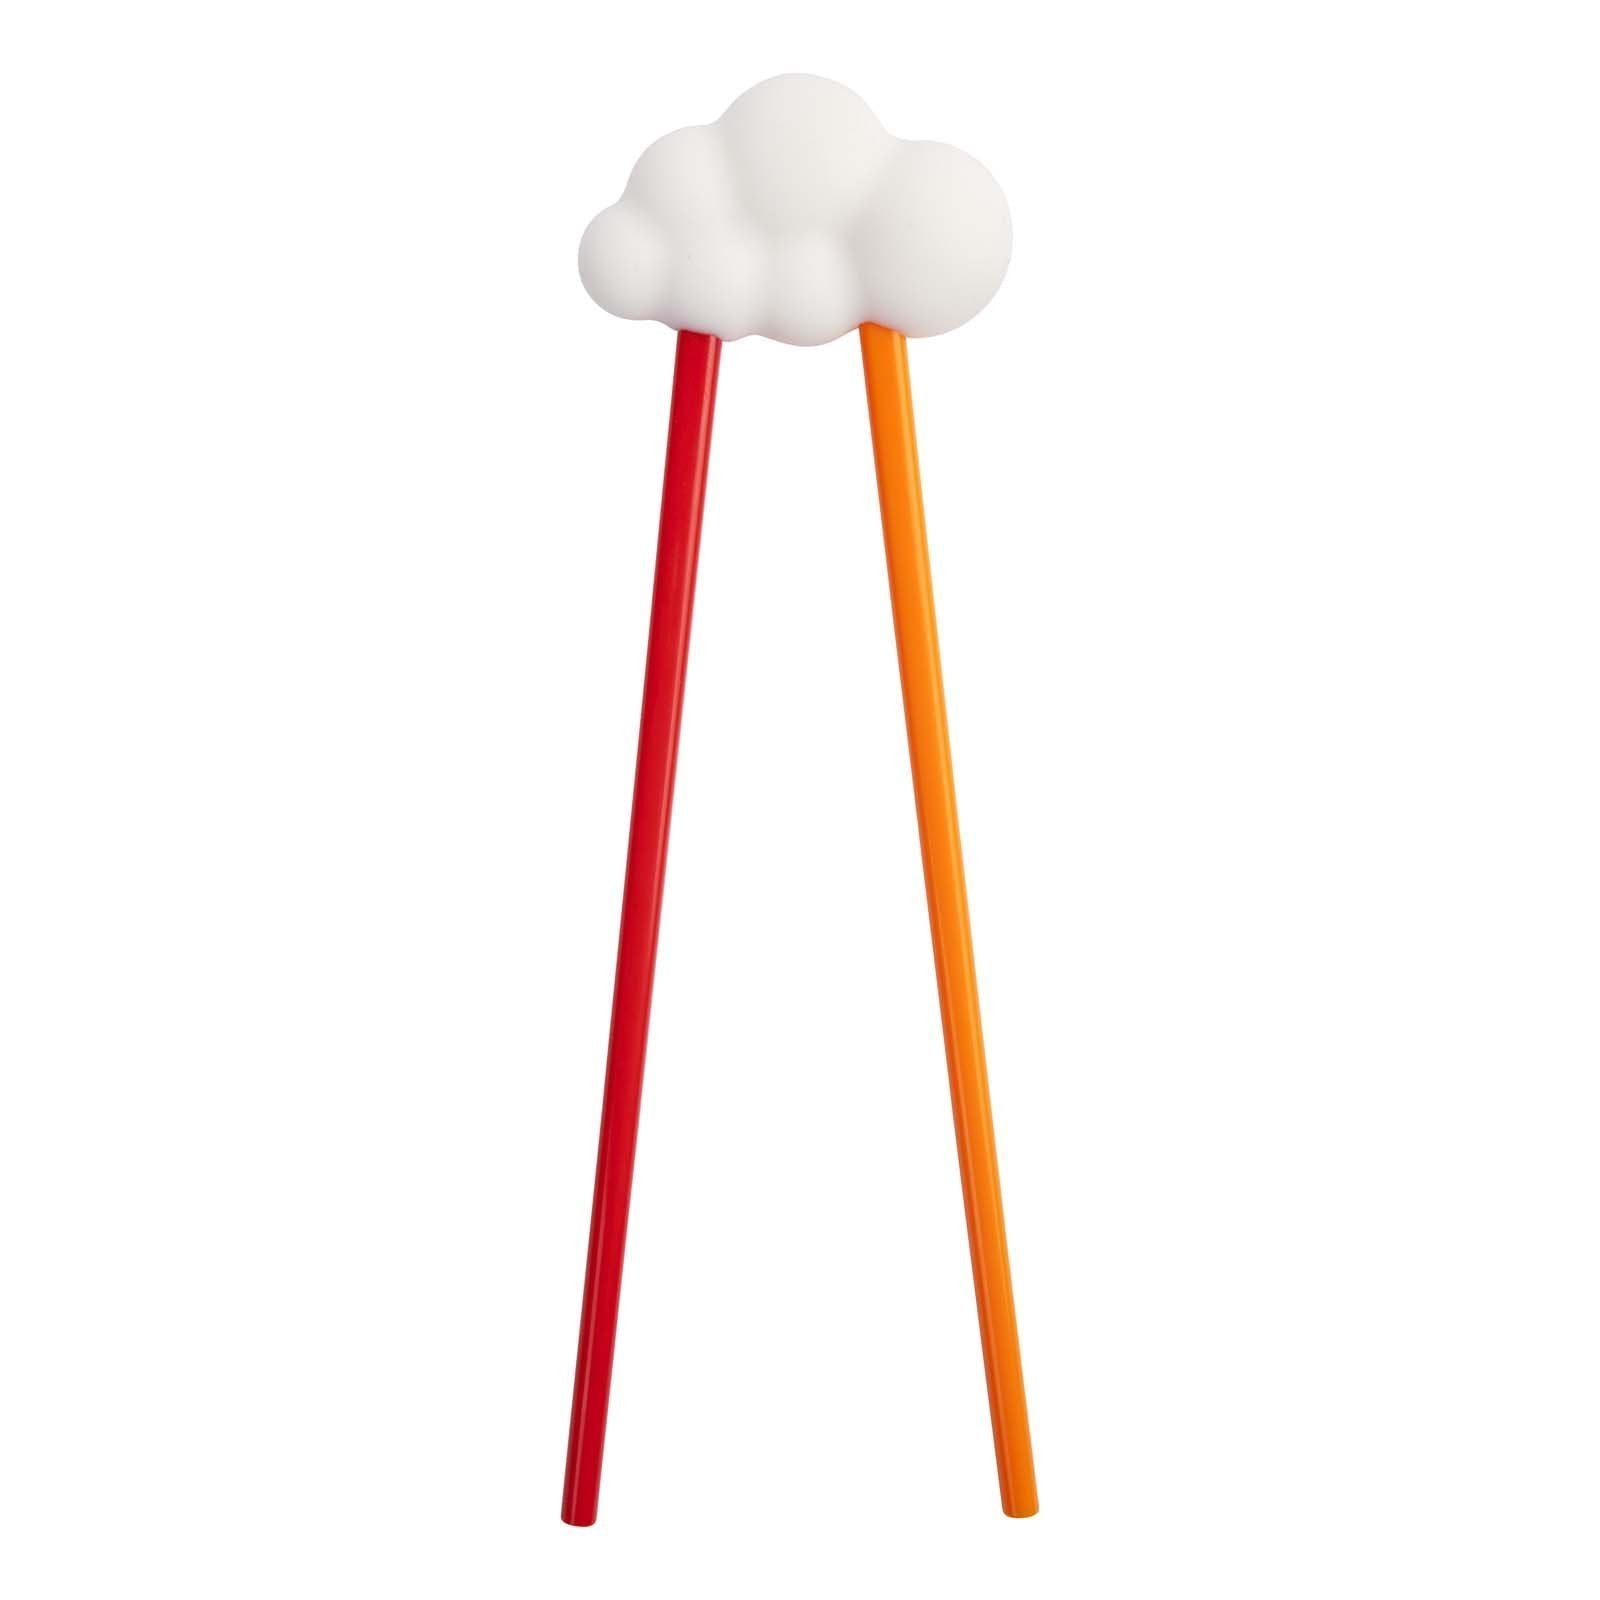 Sunnylife Rainbow Chopsticks on DLK | designlifekids.com